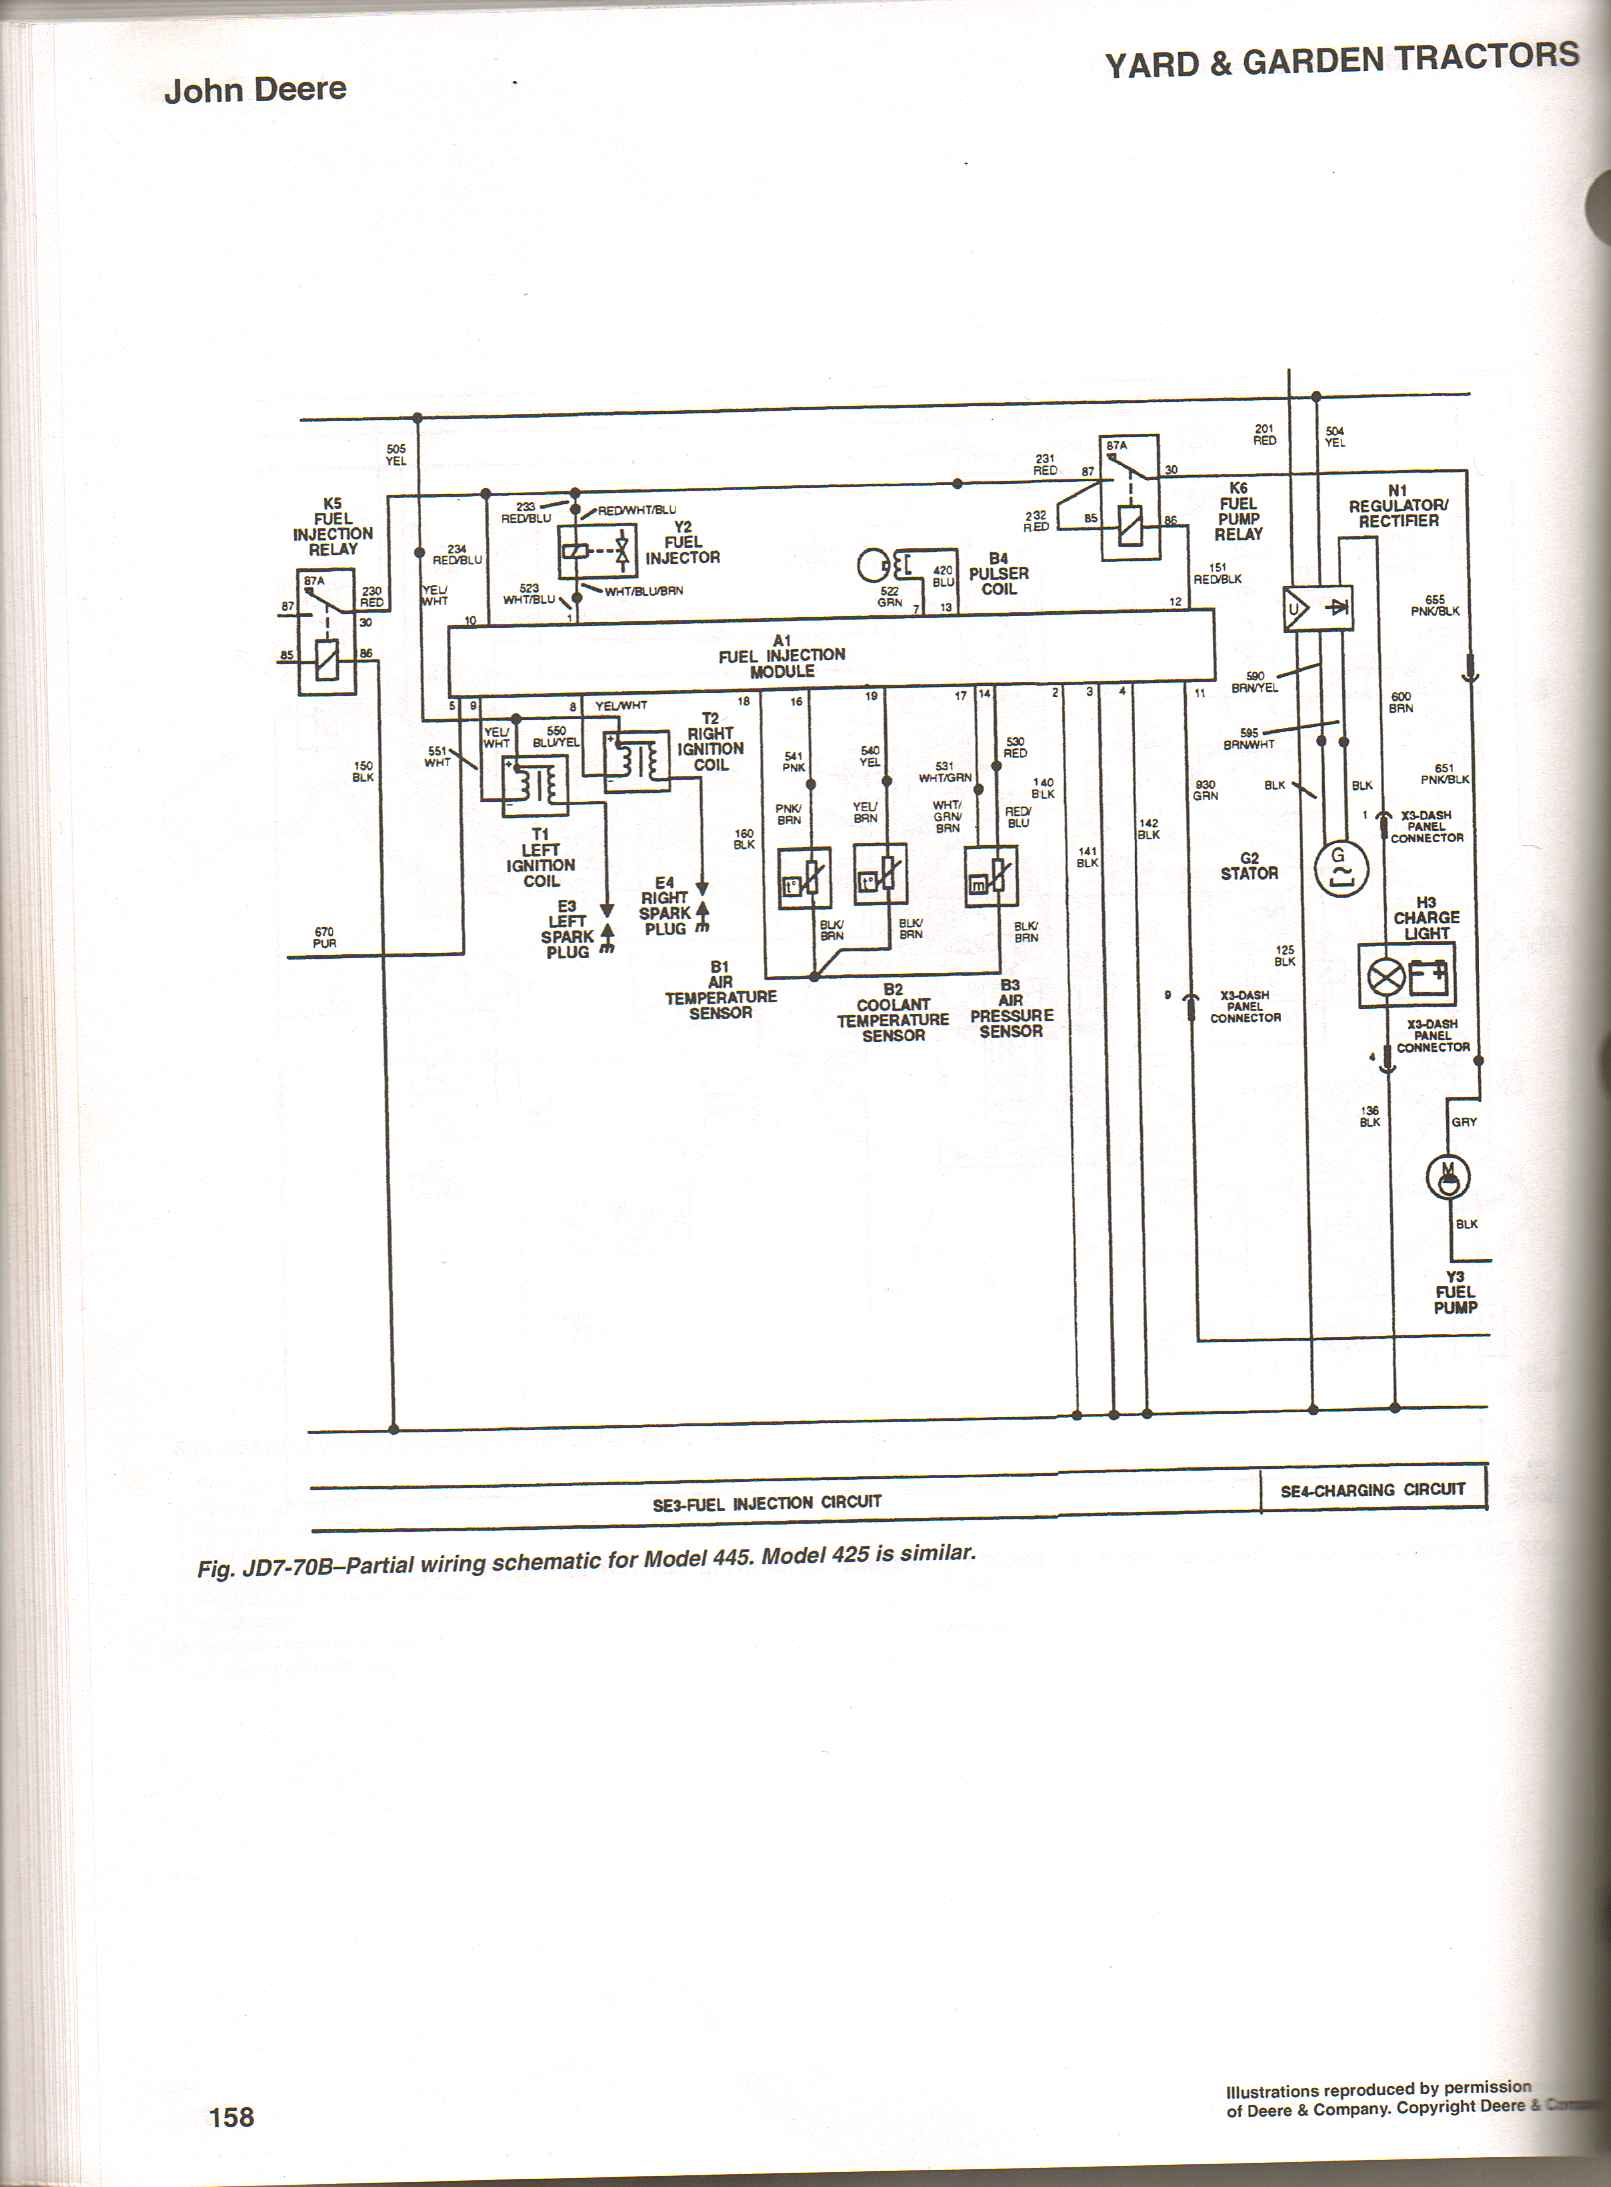 RH_5788] Wiring Diagram For 245 John Deere Tractor Free Download Wiring  DiagramPiot Otaxy Piot Ifica Nful Tron Subc Istic Pneu Mecad Gho Emba  Mohammedshrine Librar Wiring 101